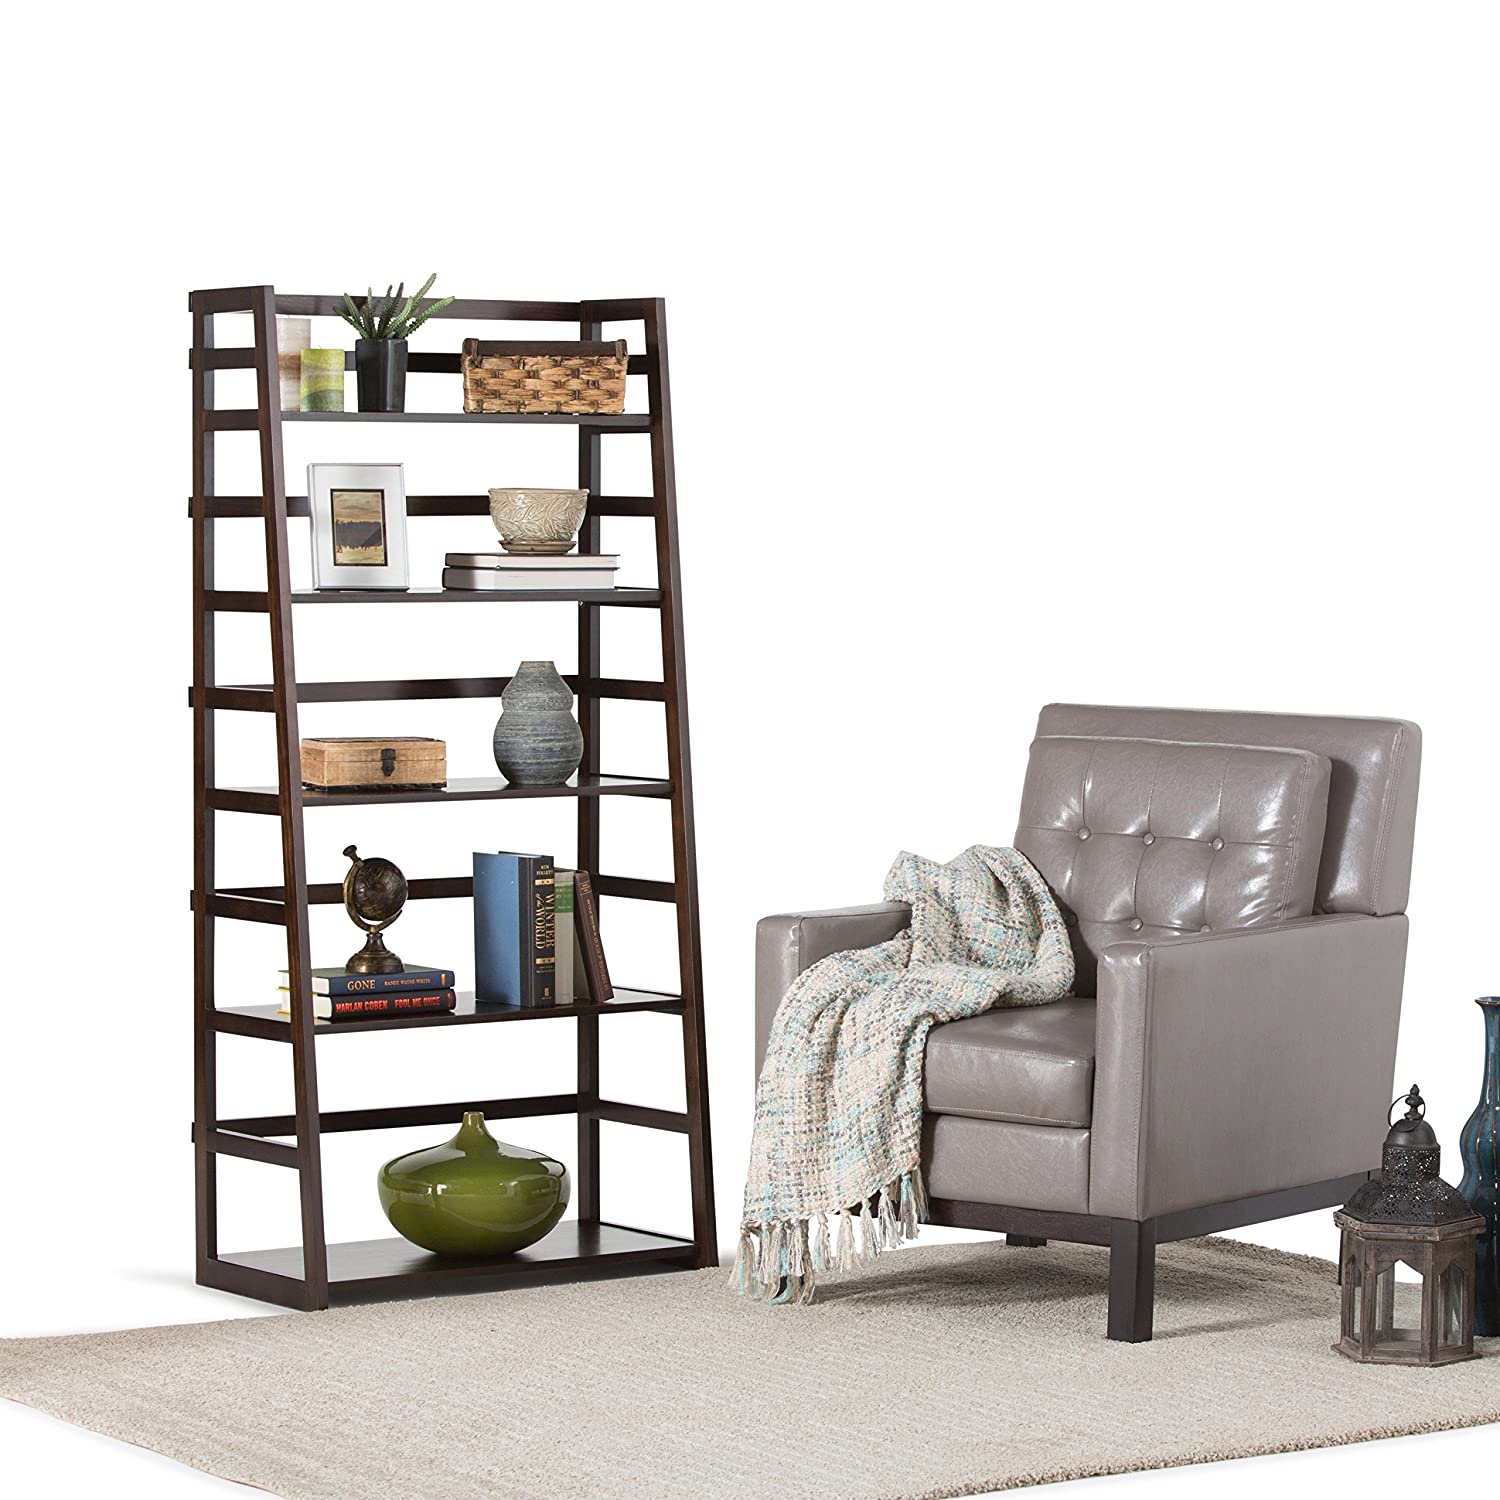 Simpli Home Acadian Collection Ladder Shelf Bookcase, Rich Tobacco Brown:  Amazon: Home & Kitchen